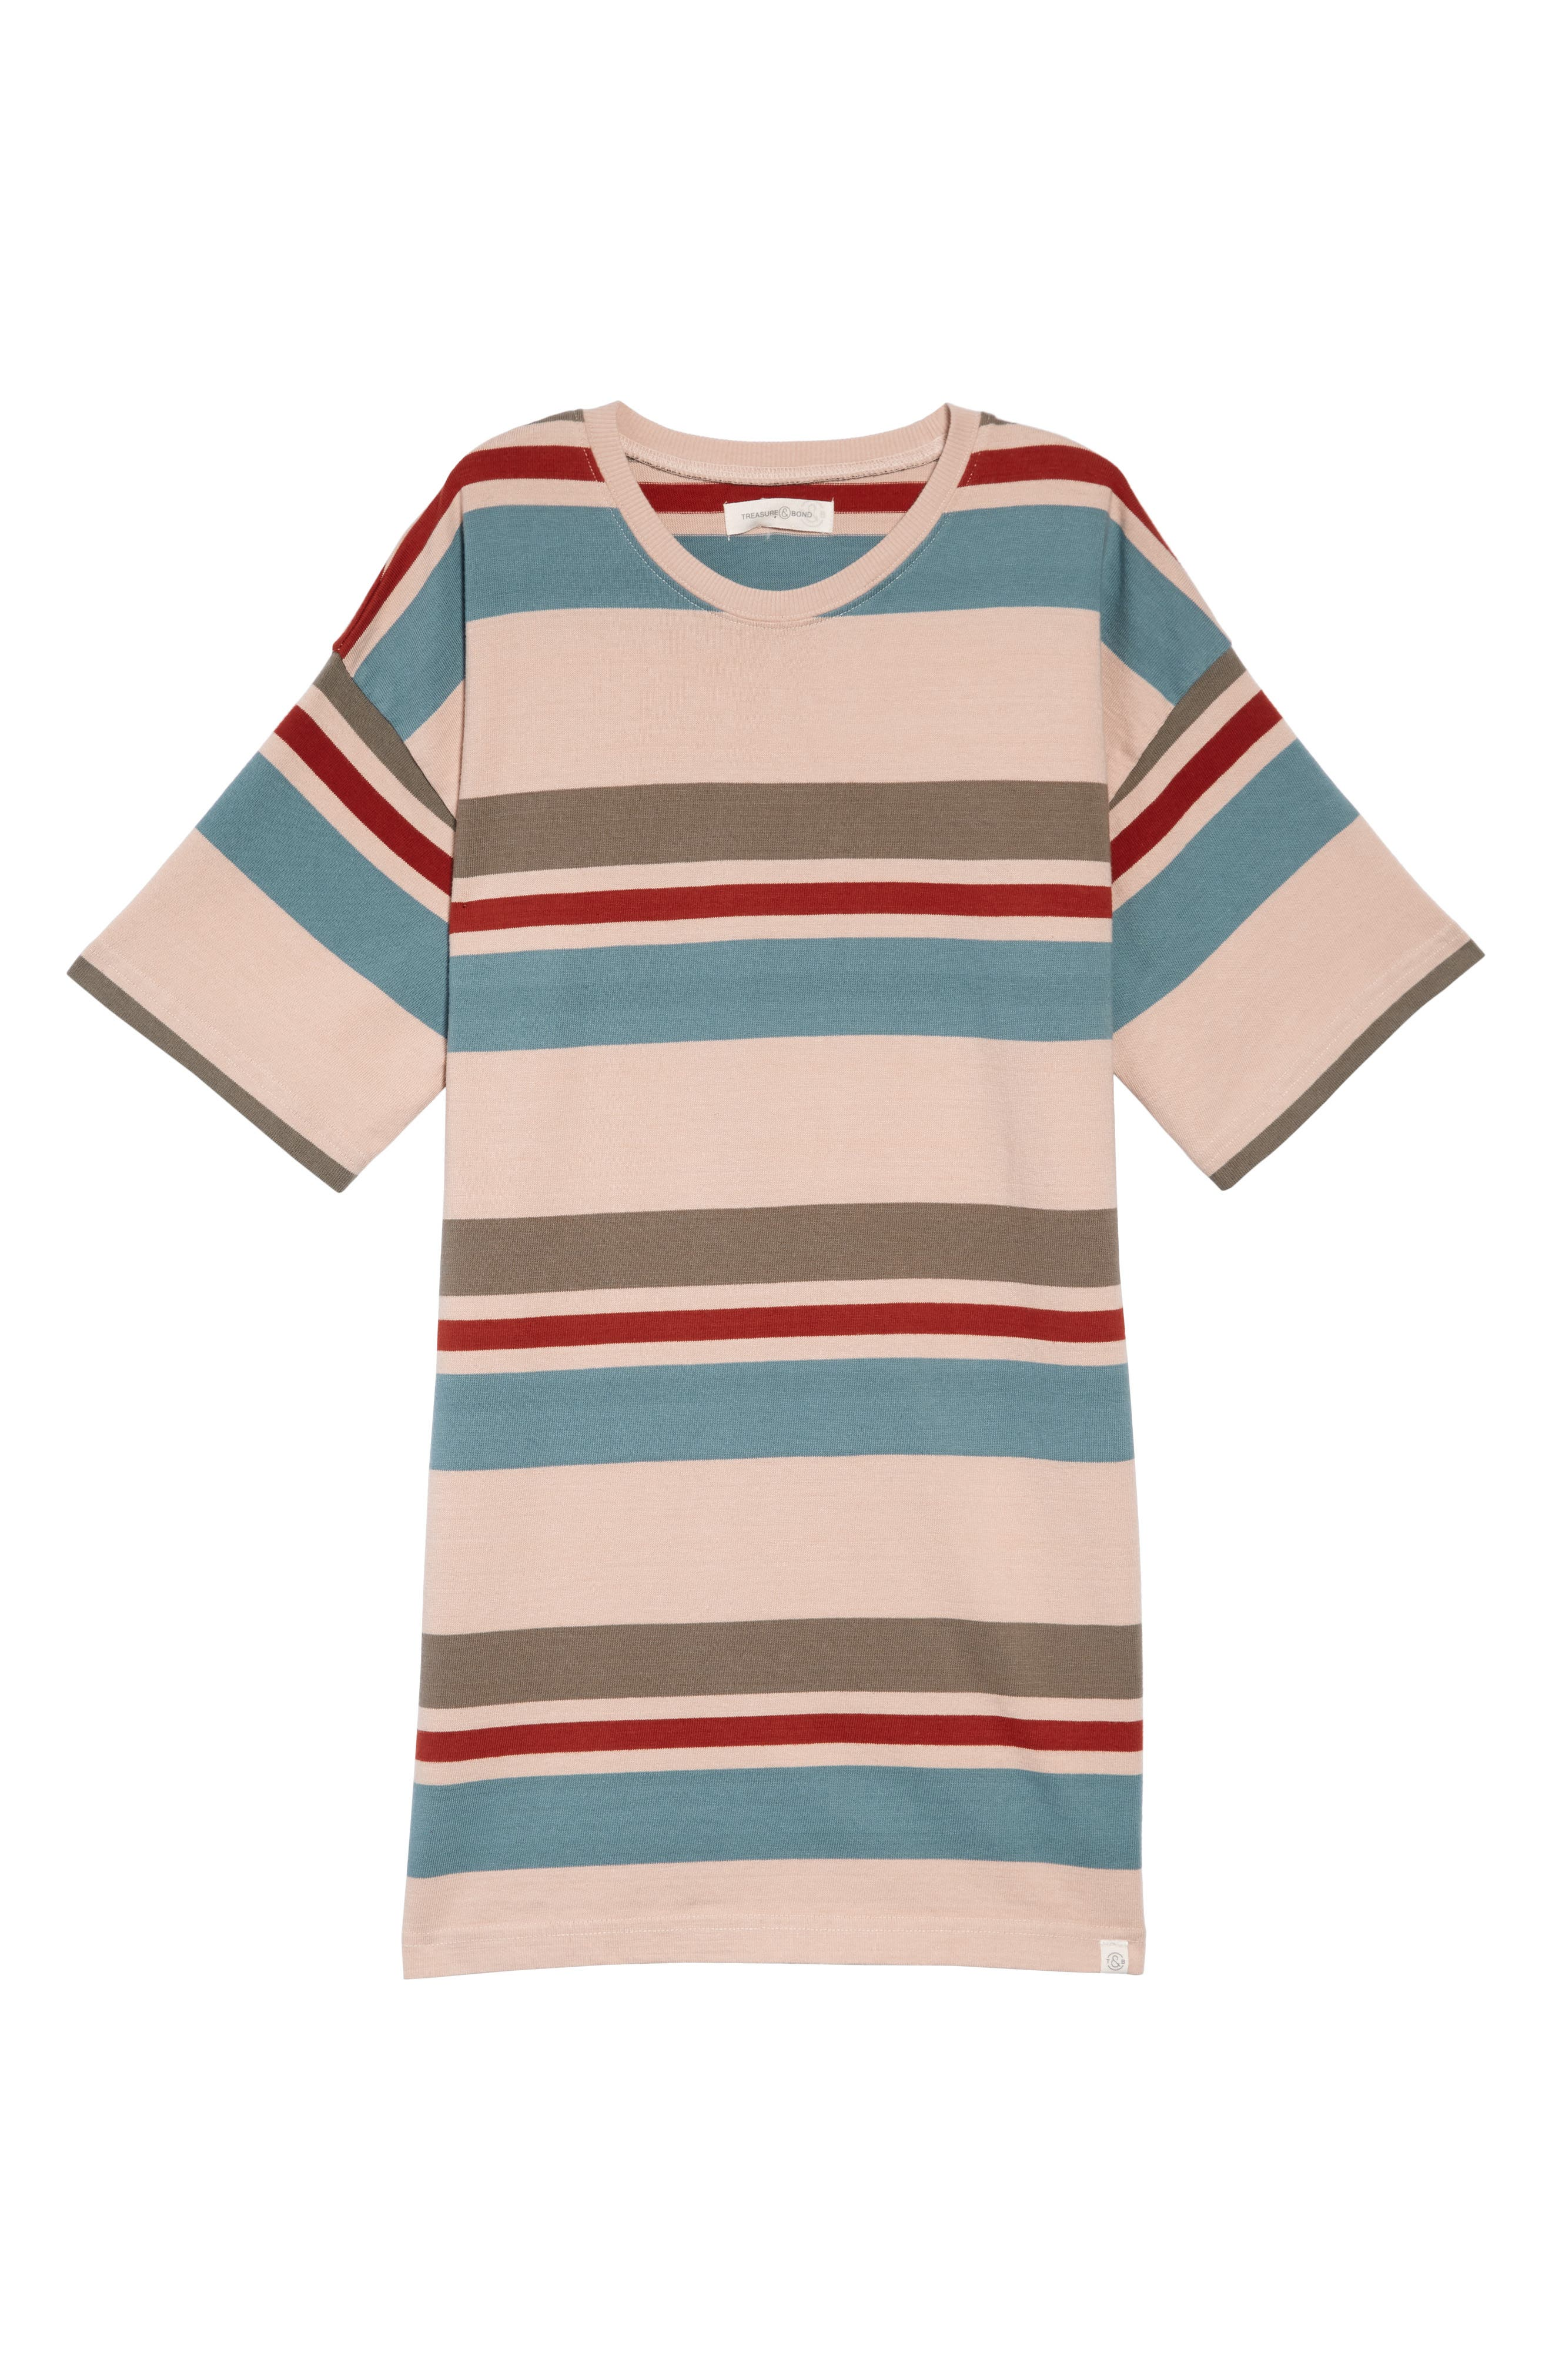 TREASURE & BOND, Rugby Stripe Shirtdress, Main thumbnail 1, color, PINK PEACH RUGBY STRIPE